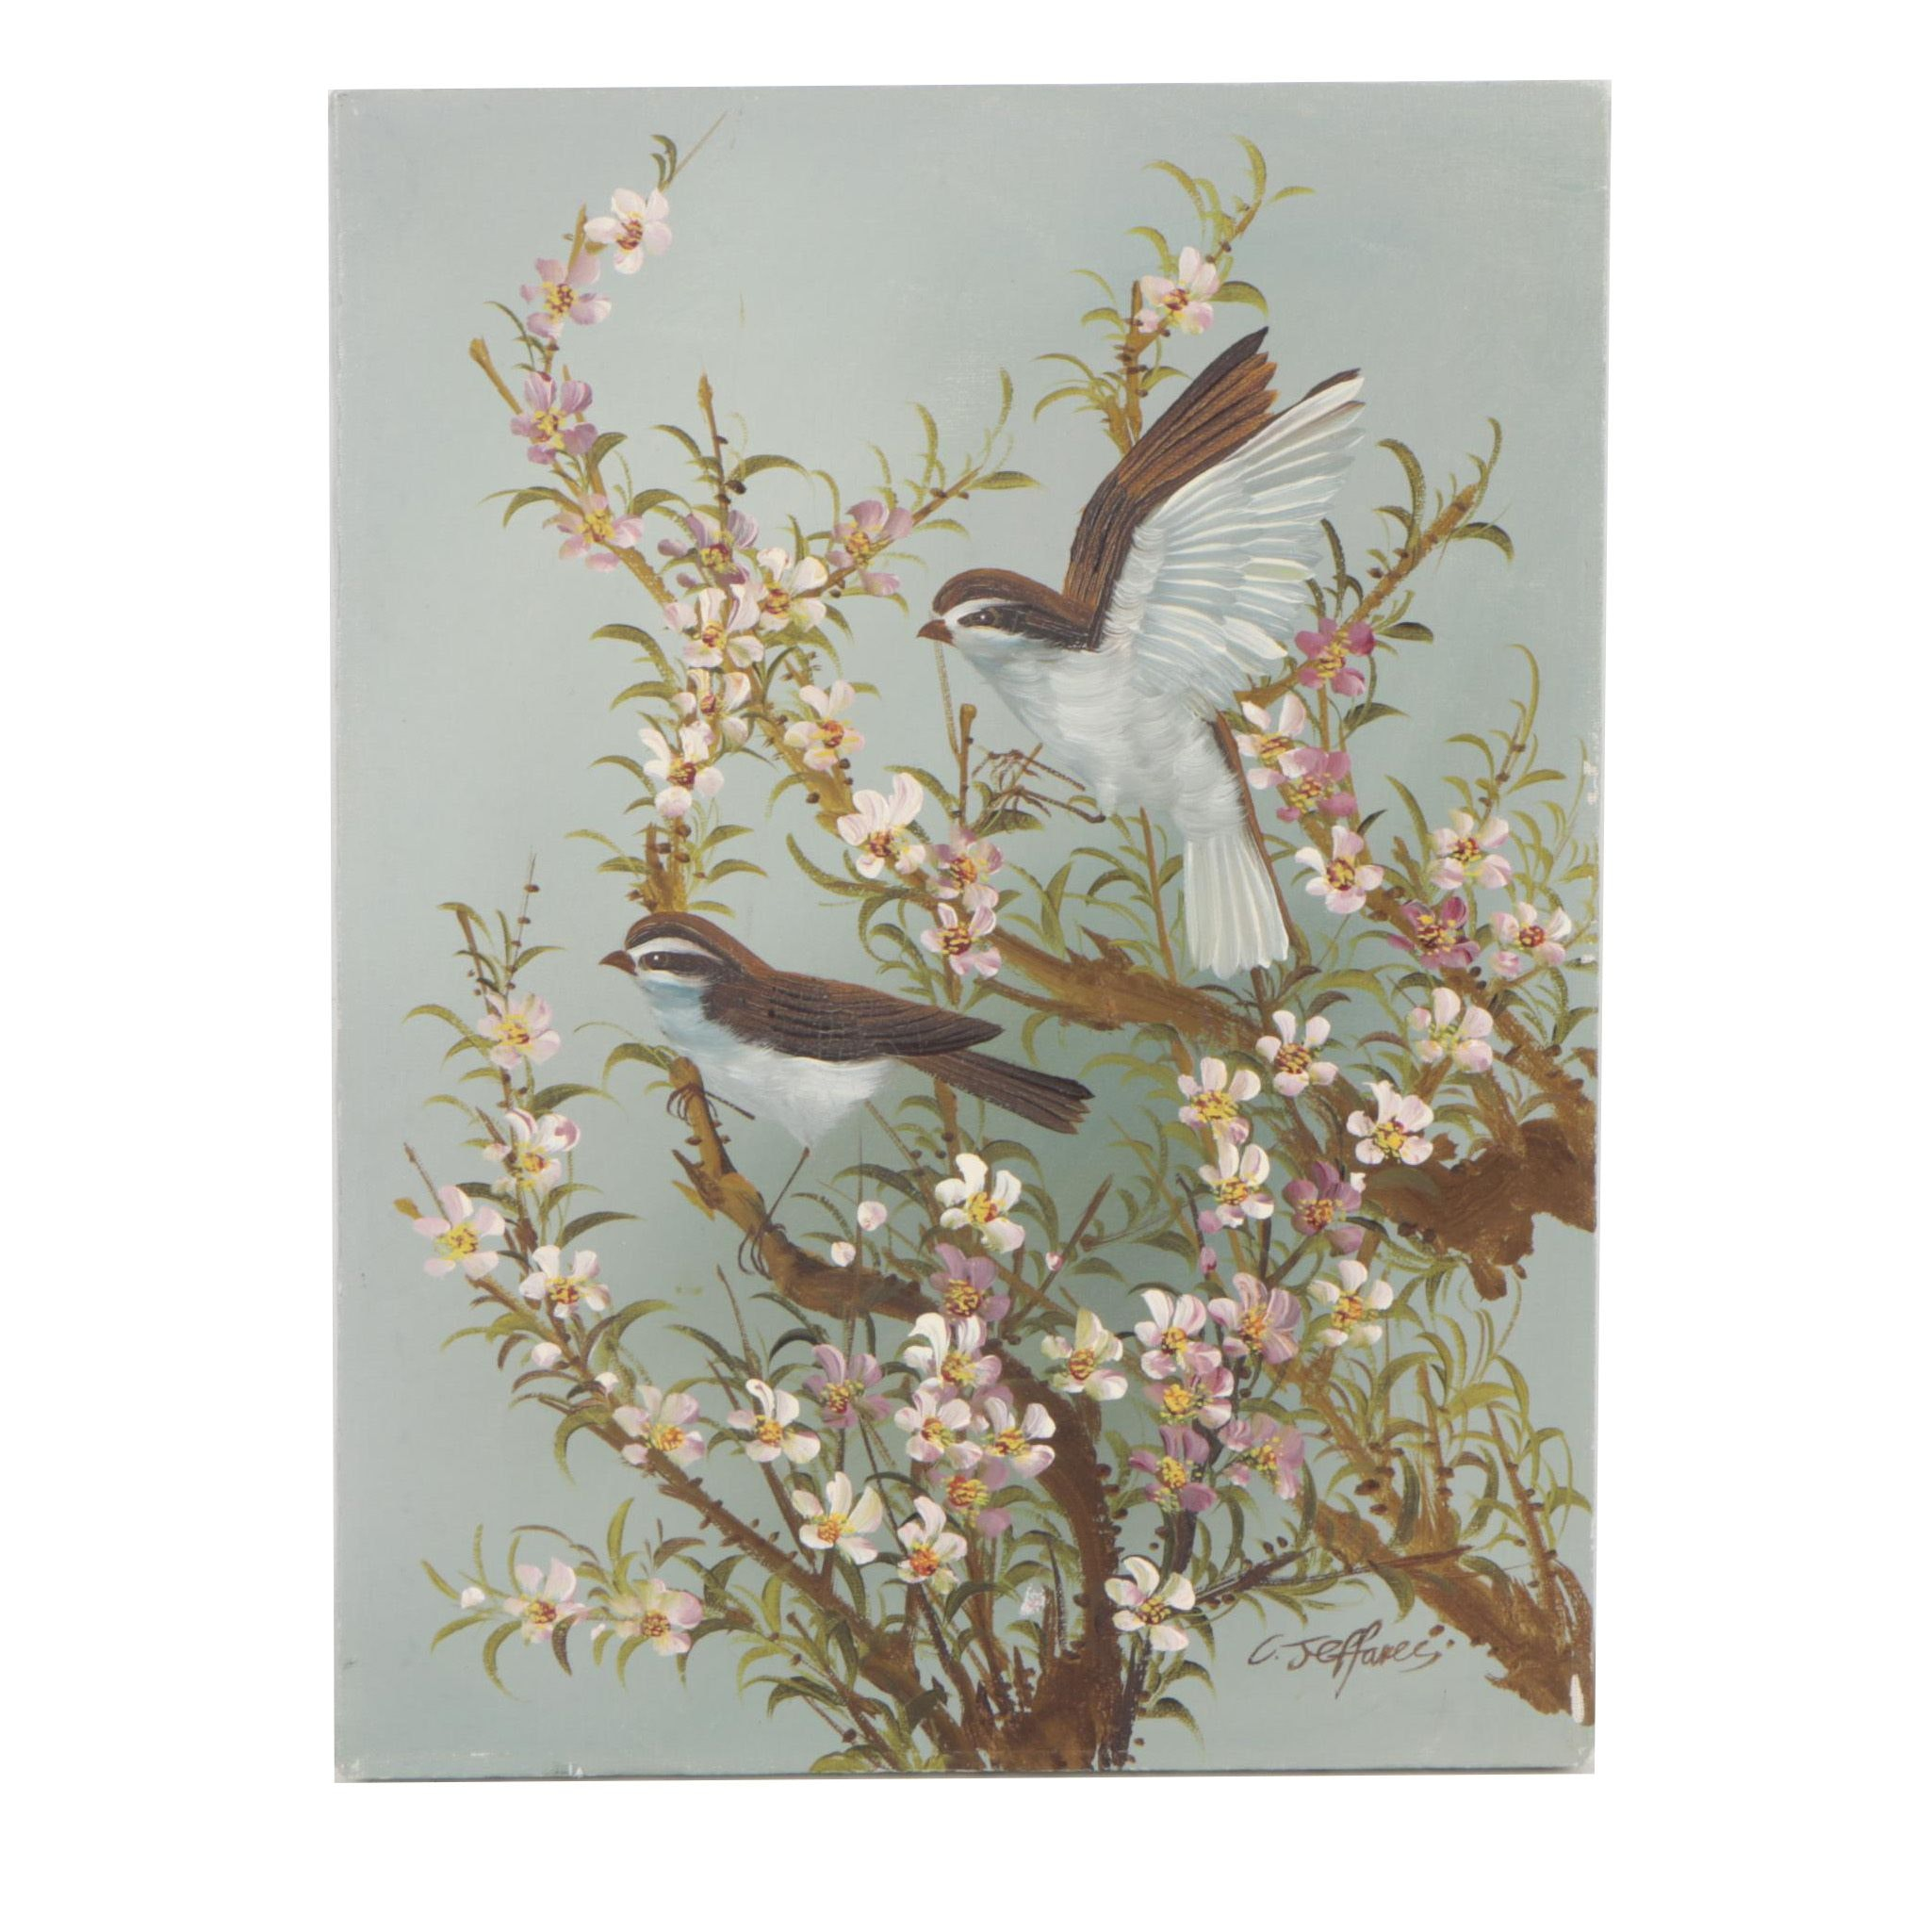 Birds in Cherry Blossoms Oil Painting by C. Jeffares